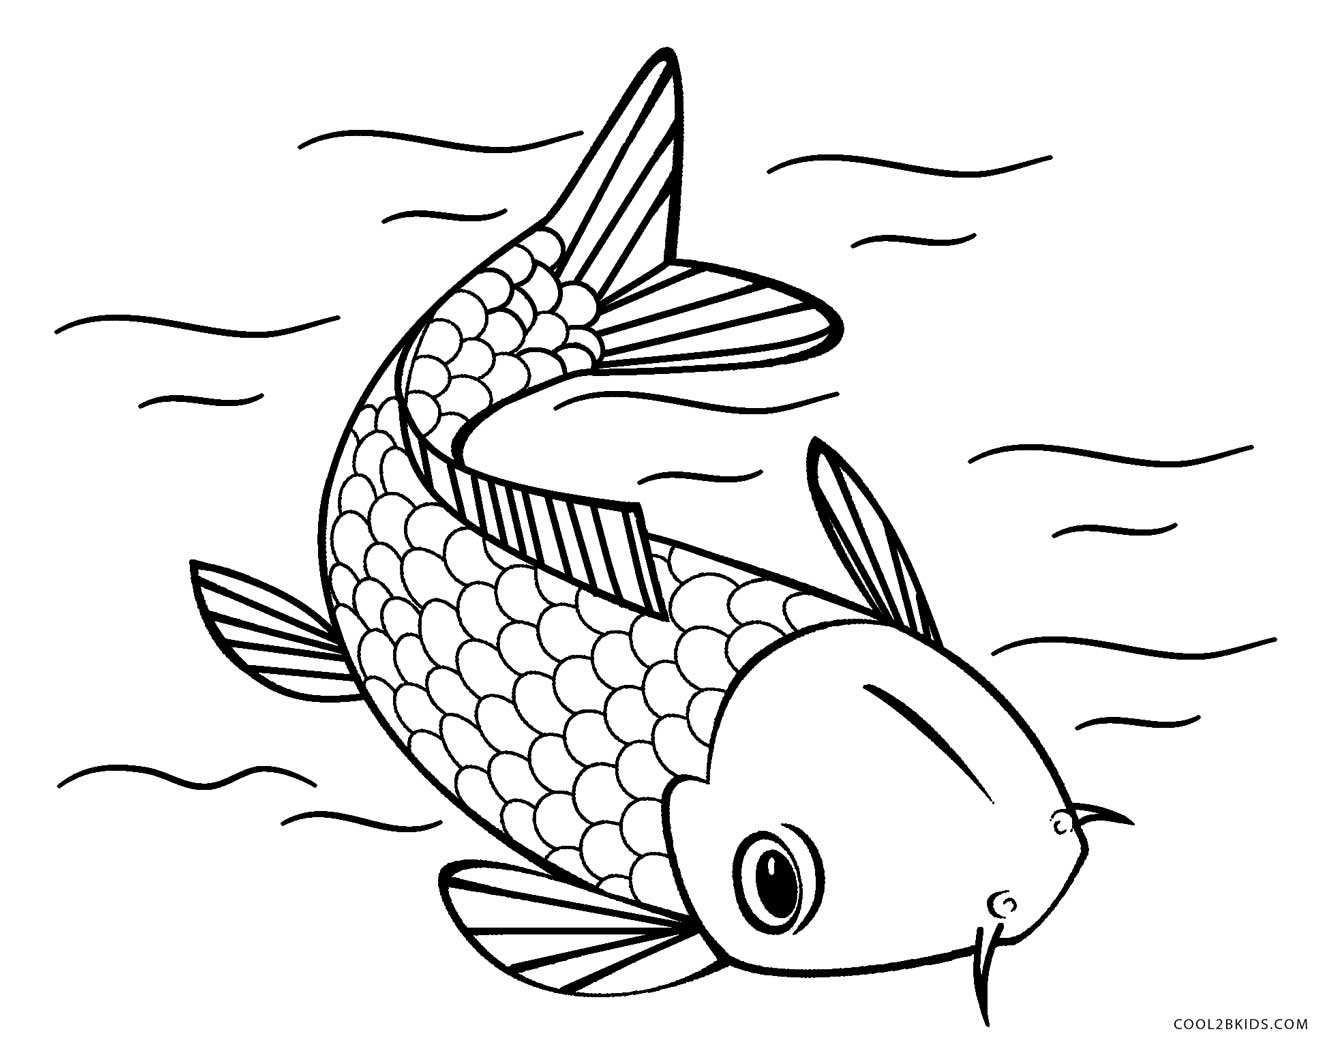 fish to color fish coloring page 2020 printable activity shelter fish color to